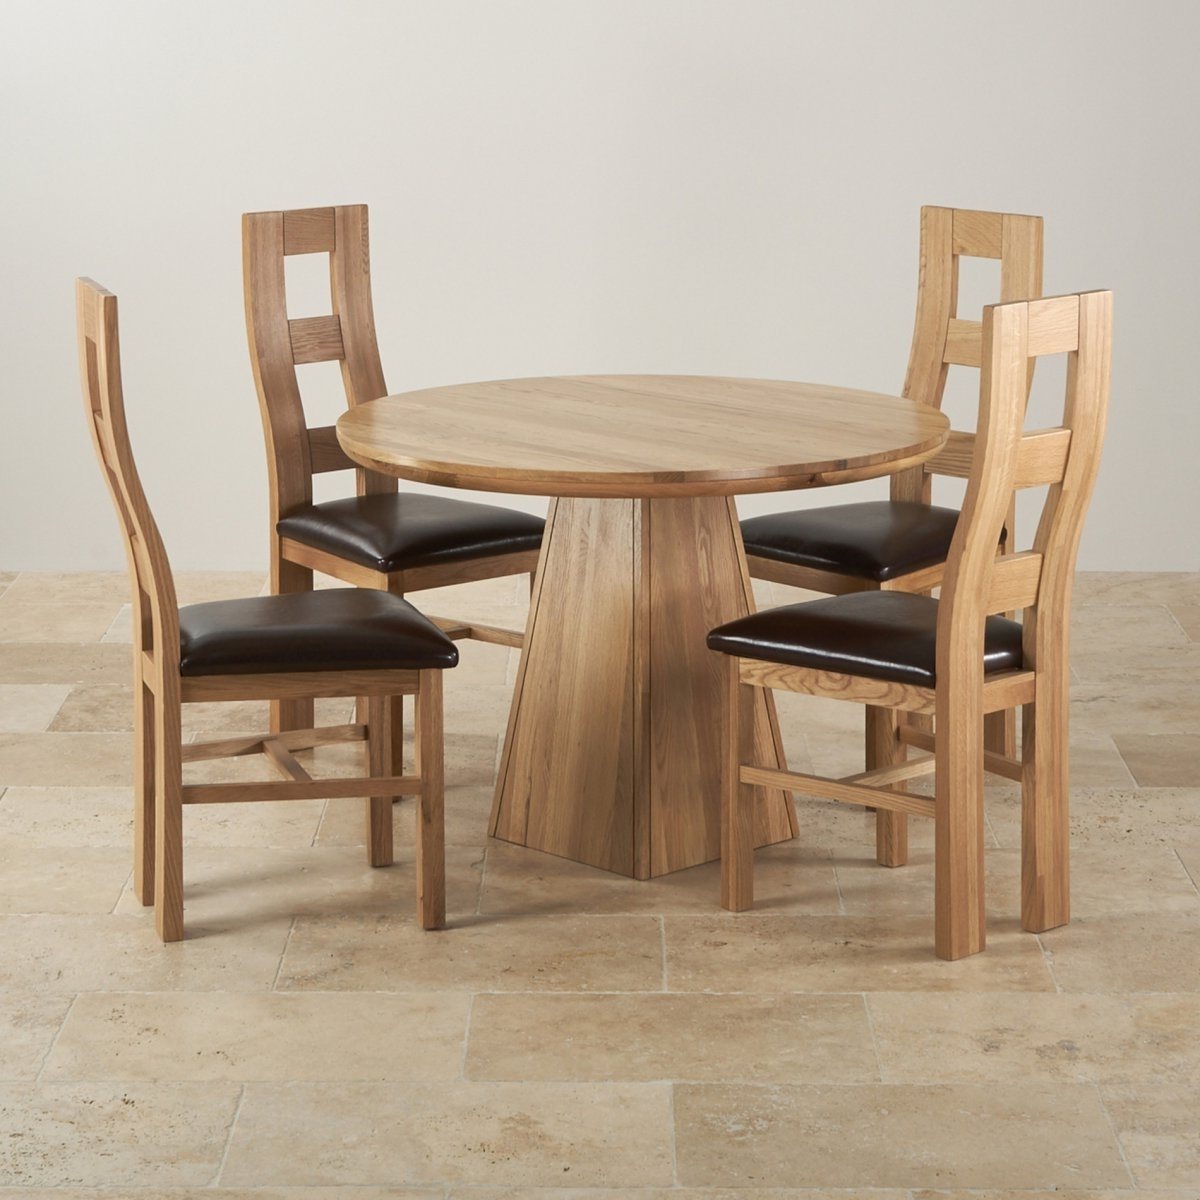 Provence Solid Oak Dining Set 3Ft 7Quot Table With 4 Chairs Luxury In Well Known Oak Dining Tables And 4 Chairs (View 18 of 25)